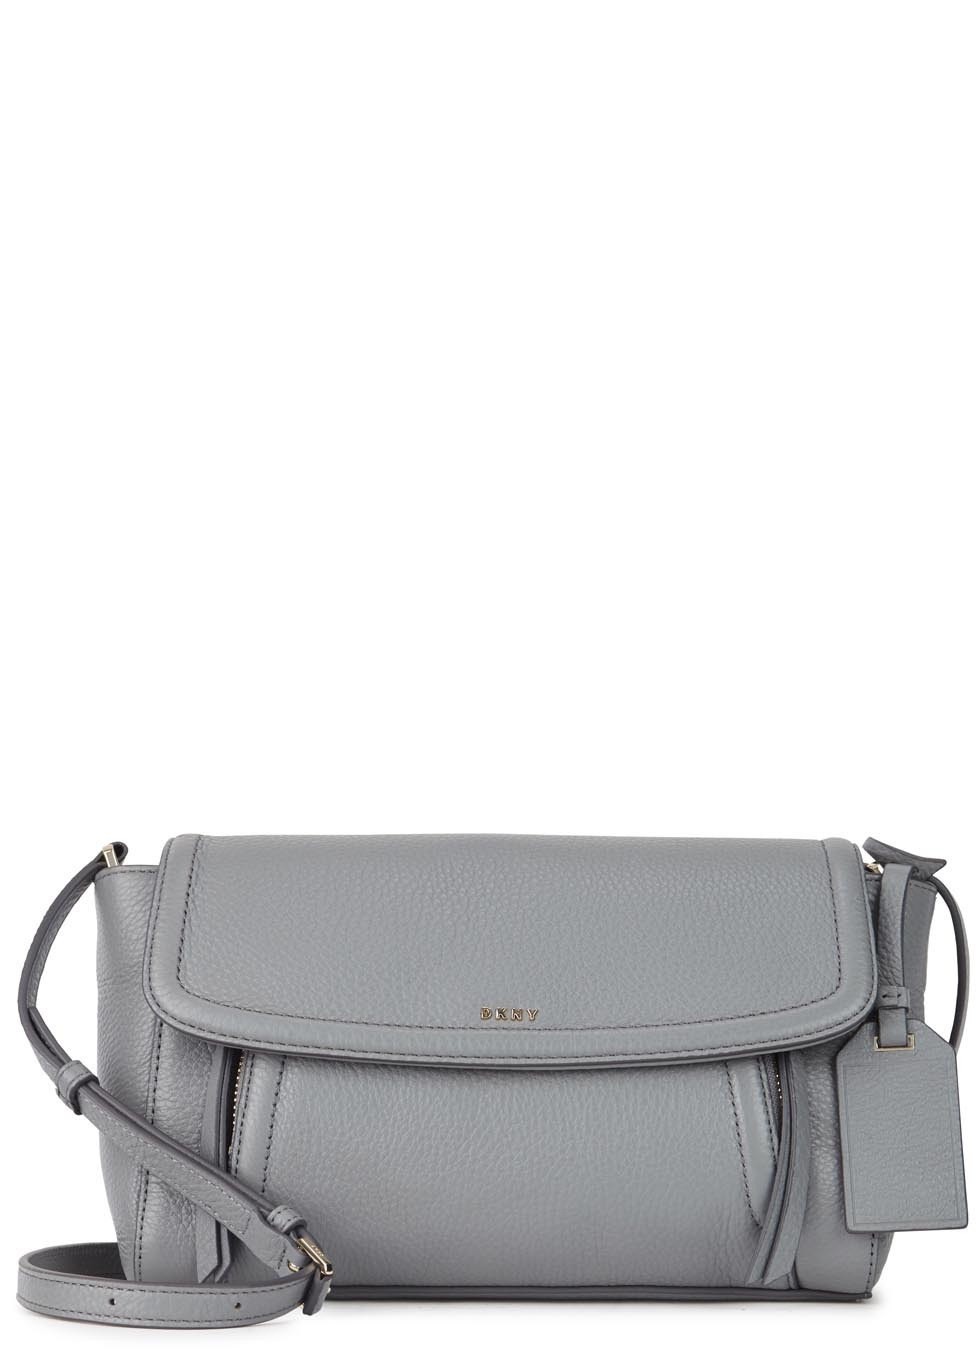 Chelsea Vintage Small Leather Cross Body Bag - predominant colour: mid grey; occasions: casual, creative work; type of pattern: standard; style: shoulder; length: across body/long; size: standard; material: leather; pattern: plain; finish: plain; season: s/s 2016; wardrobe: investment